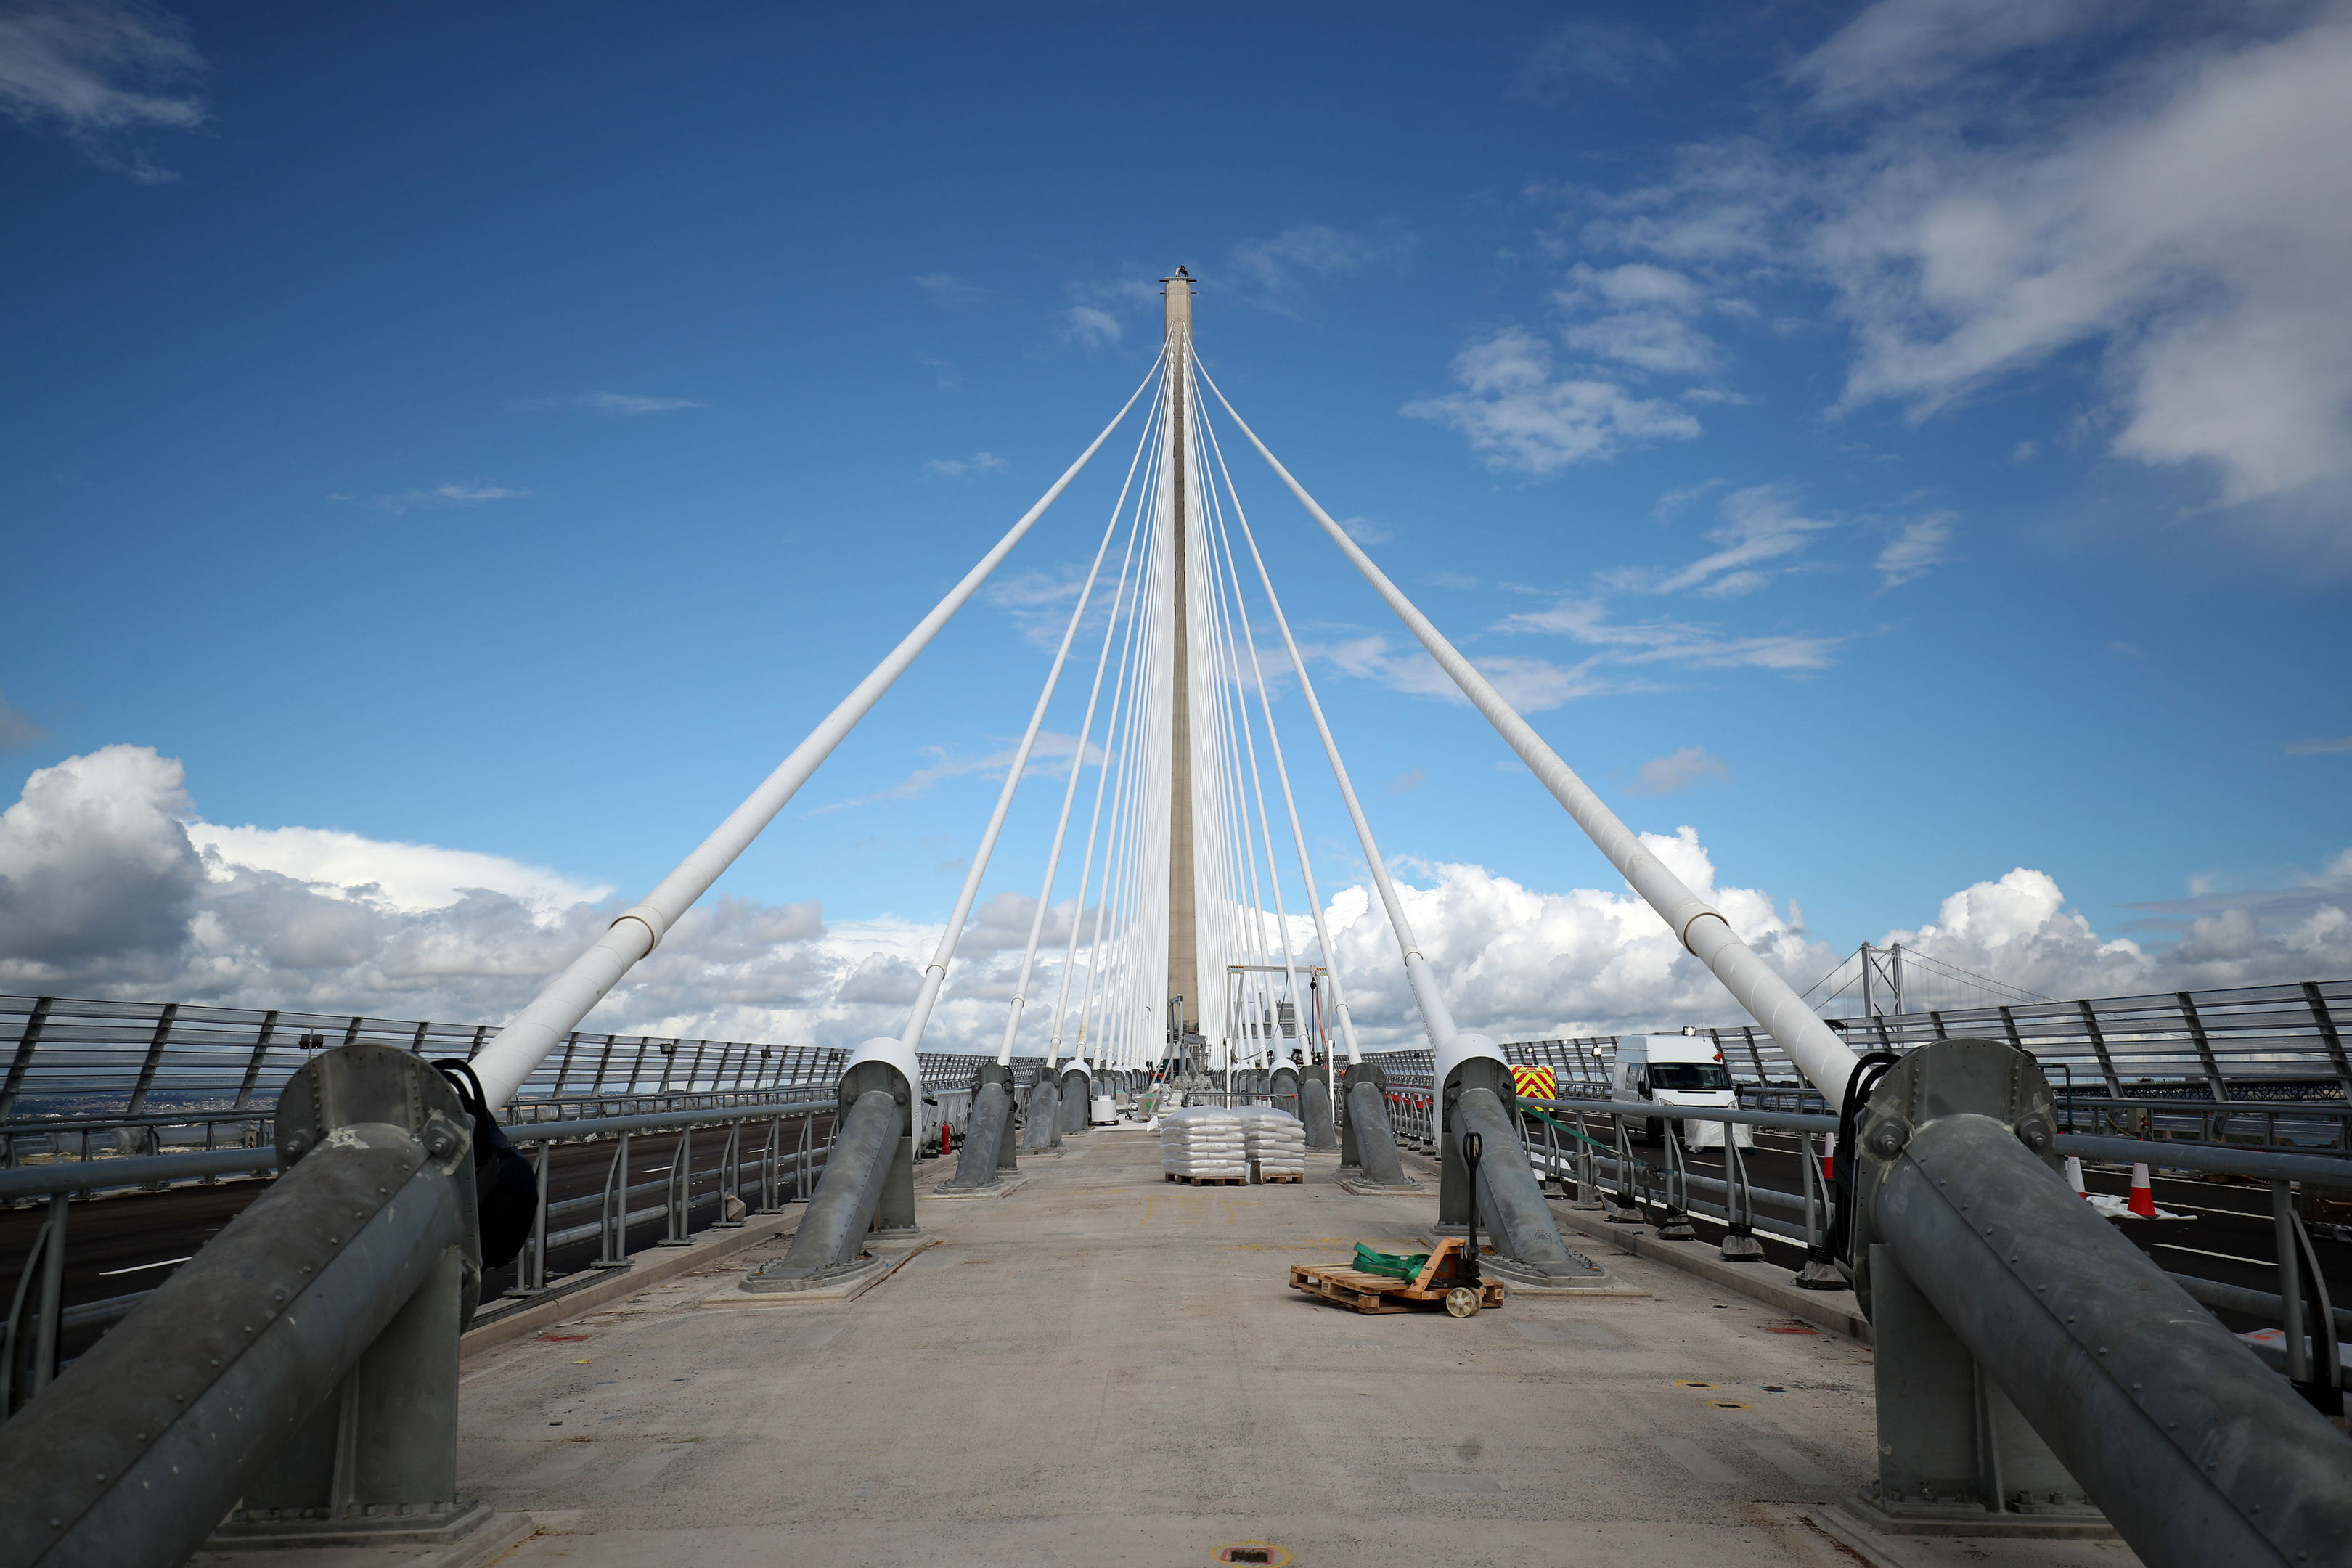 Final works are carried out on the Queensferry Crossing, the new road bridge over the Firth of Forth, South Queensferry, ahead of the official opening by Queen Elizabeth II on September 4, 2017. (Jane Barlow/PA Wire)